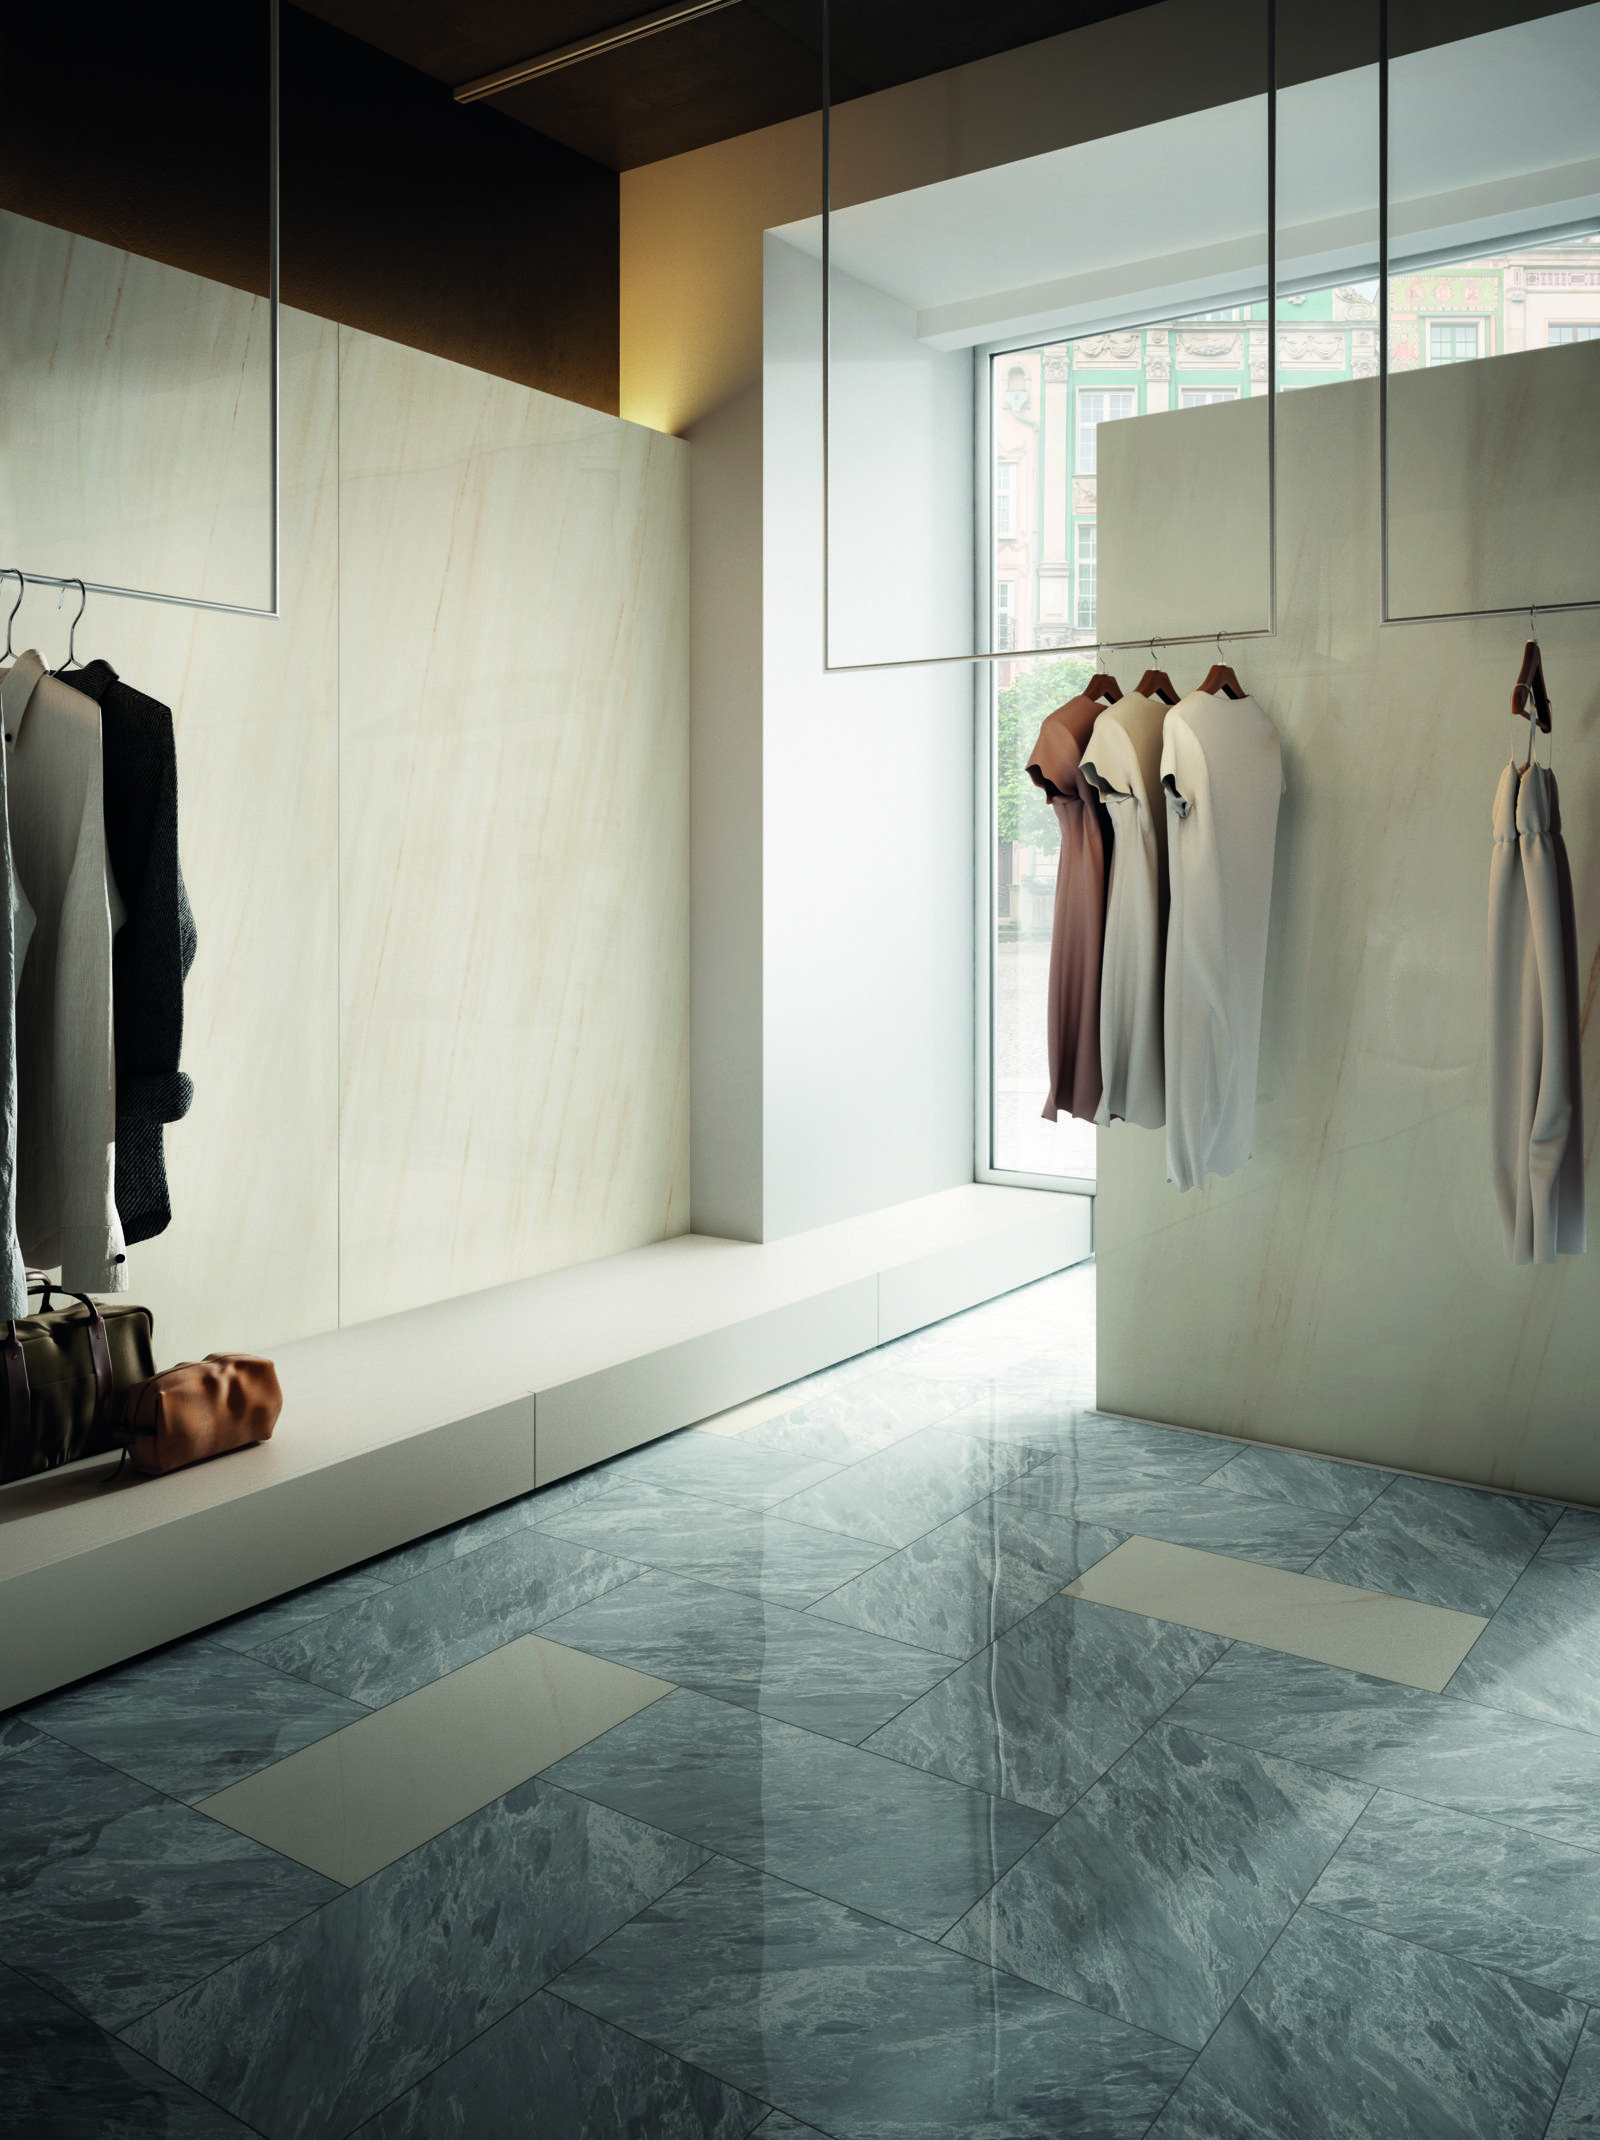 Caesar chooses Grigio Boreale from Anima Select porcelain tile series to enhance with its elegant color shades this Boutique #marblelook #tile #tiles #piastrelle #effettomarmo #marmo #pavimento #floor #boutique #fashon